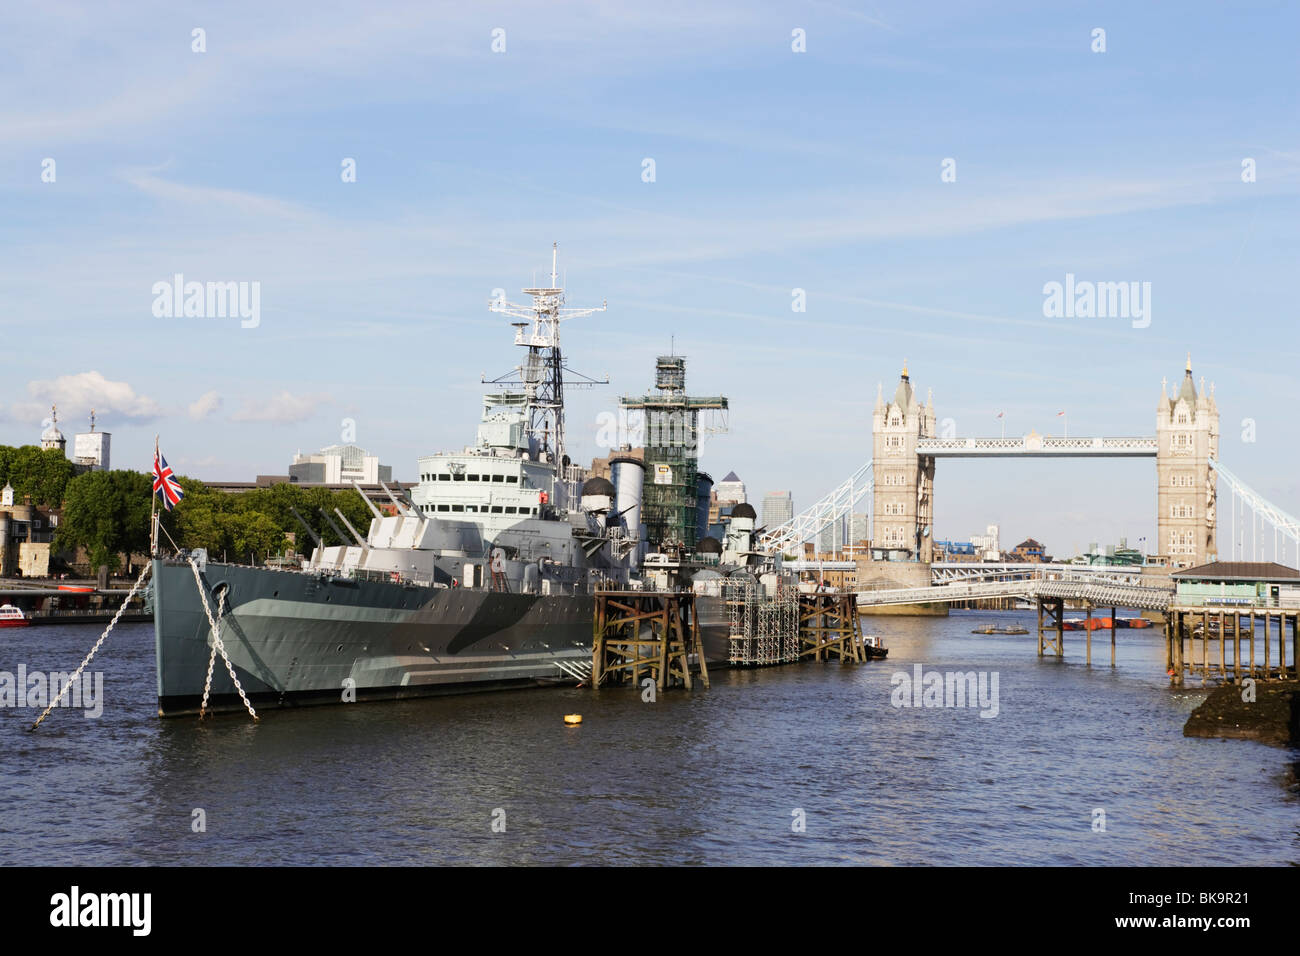 HMS Belfast on river Thames with Tower Bridge in background, London, London, England, United Kingdom - Stock Image